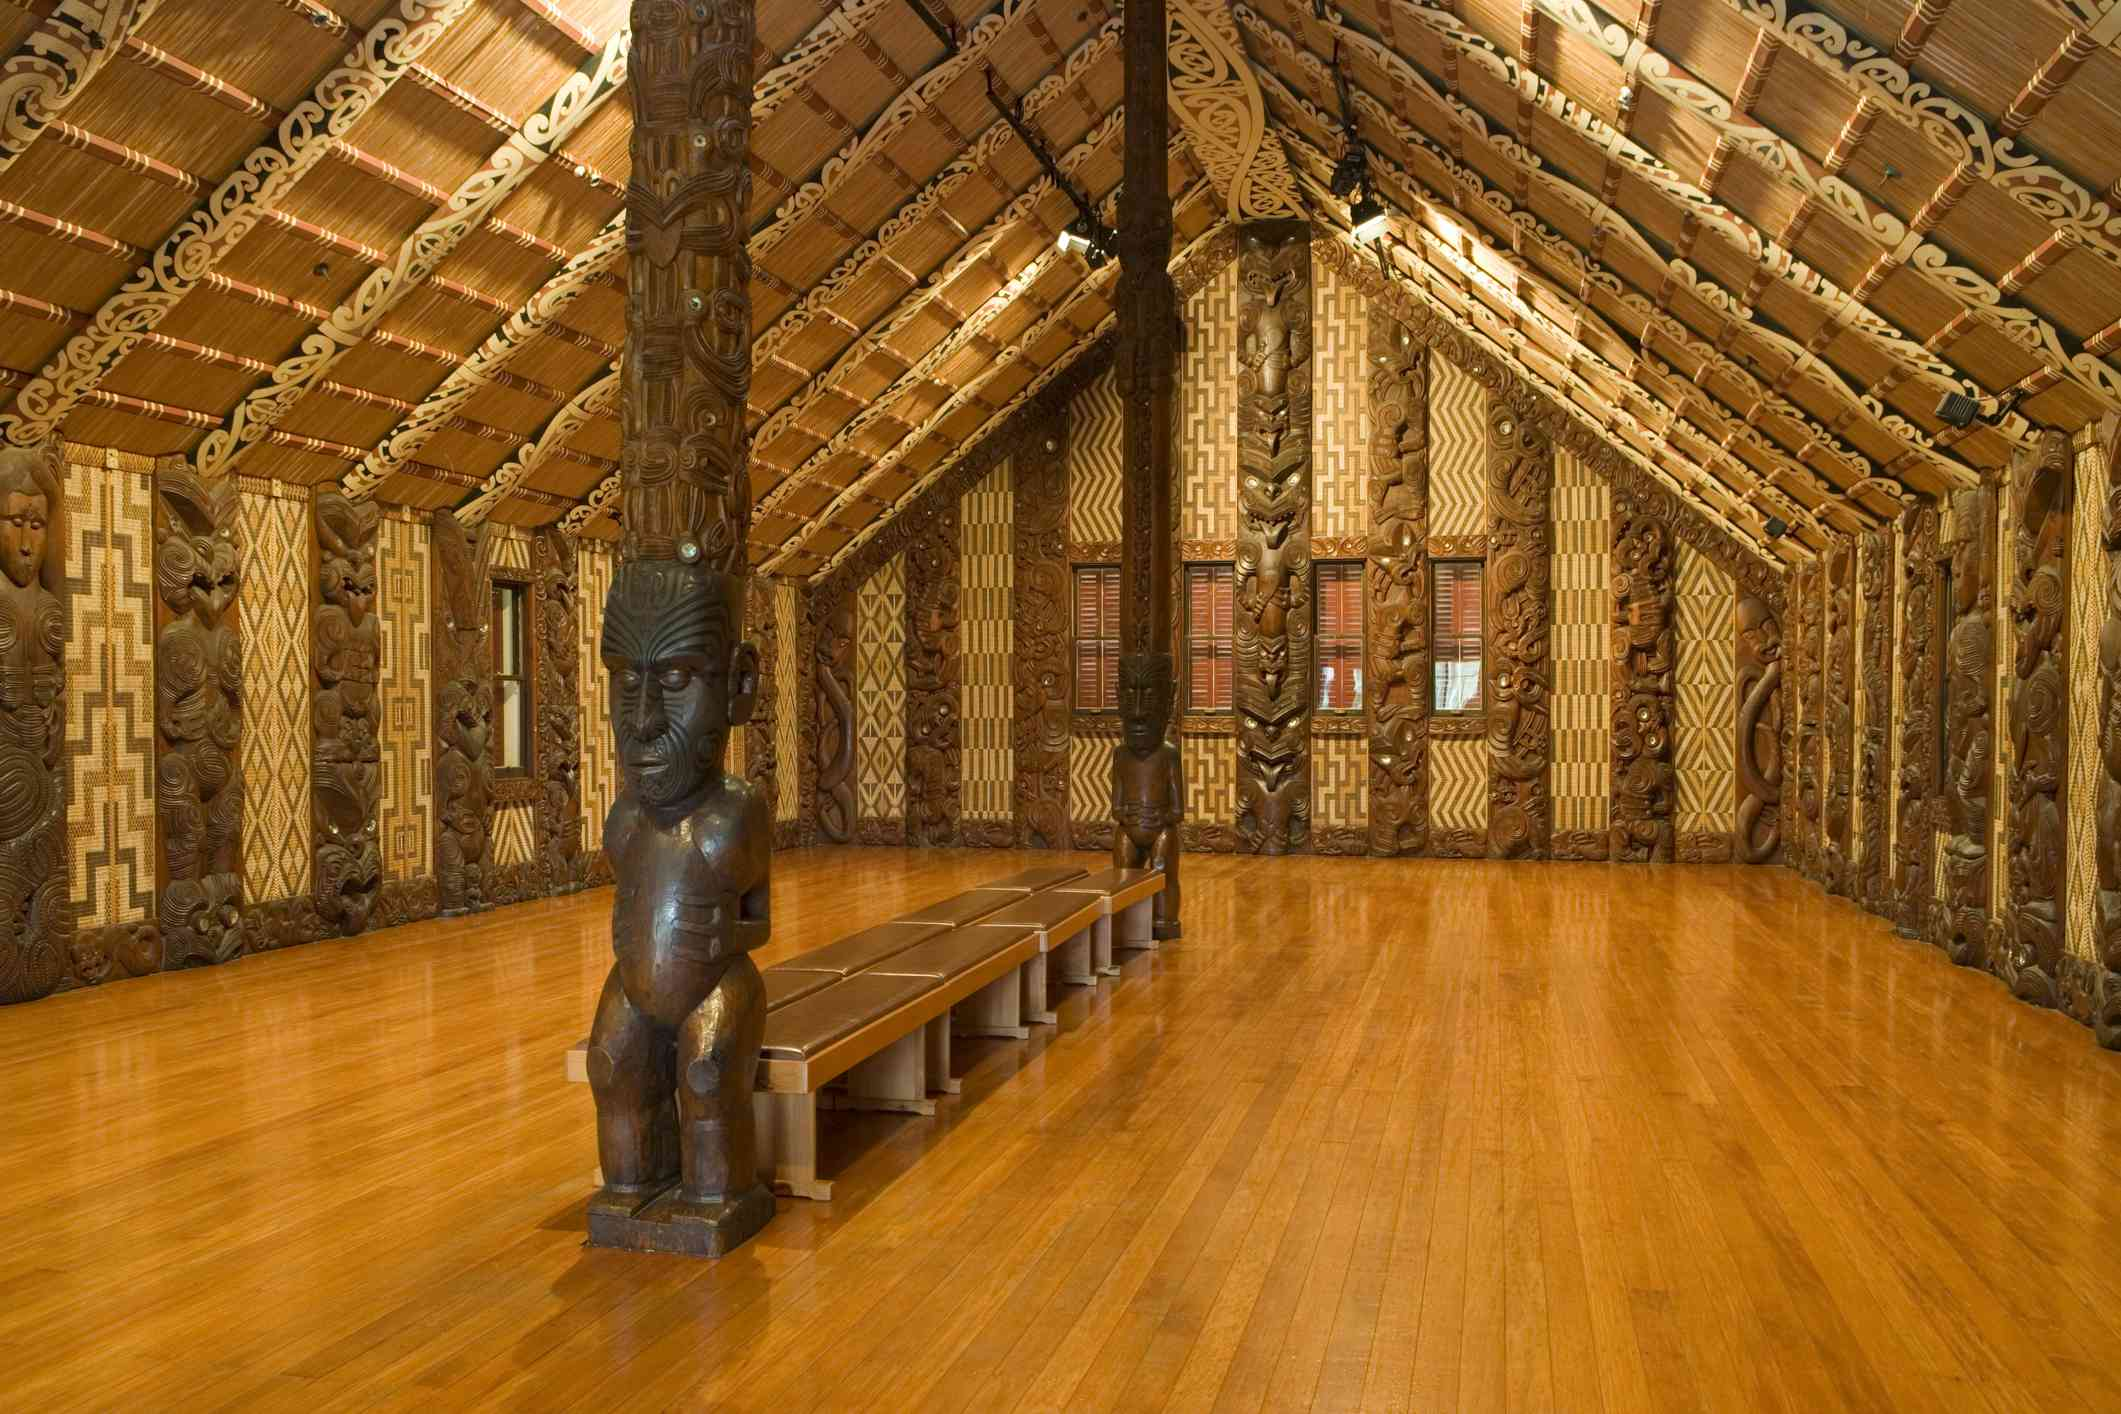 carved wooden beams inside a Maori meeting house